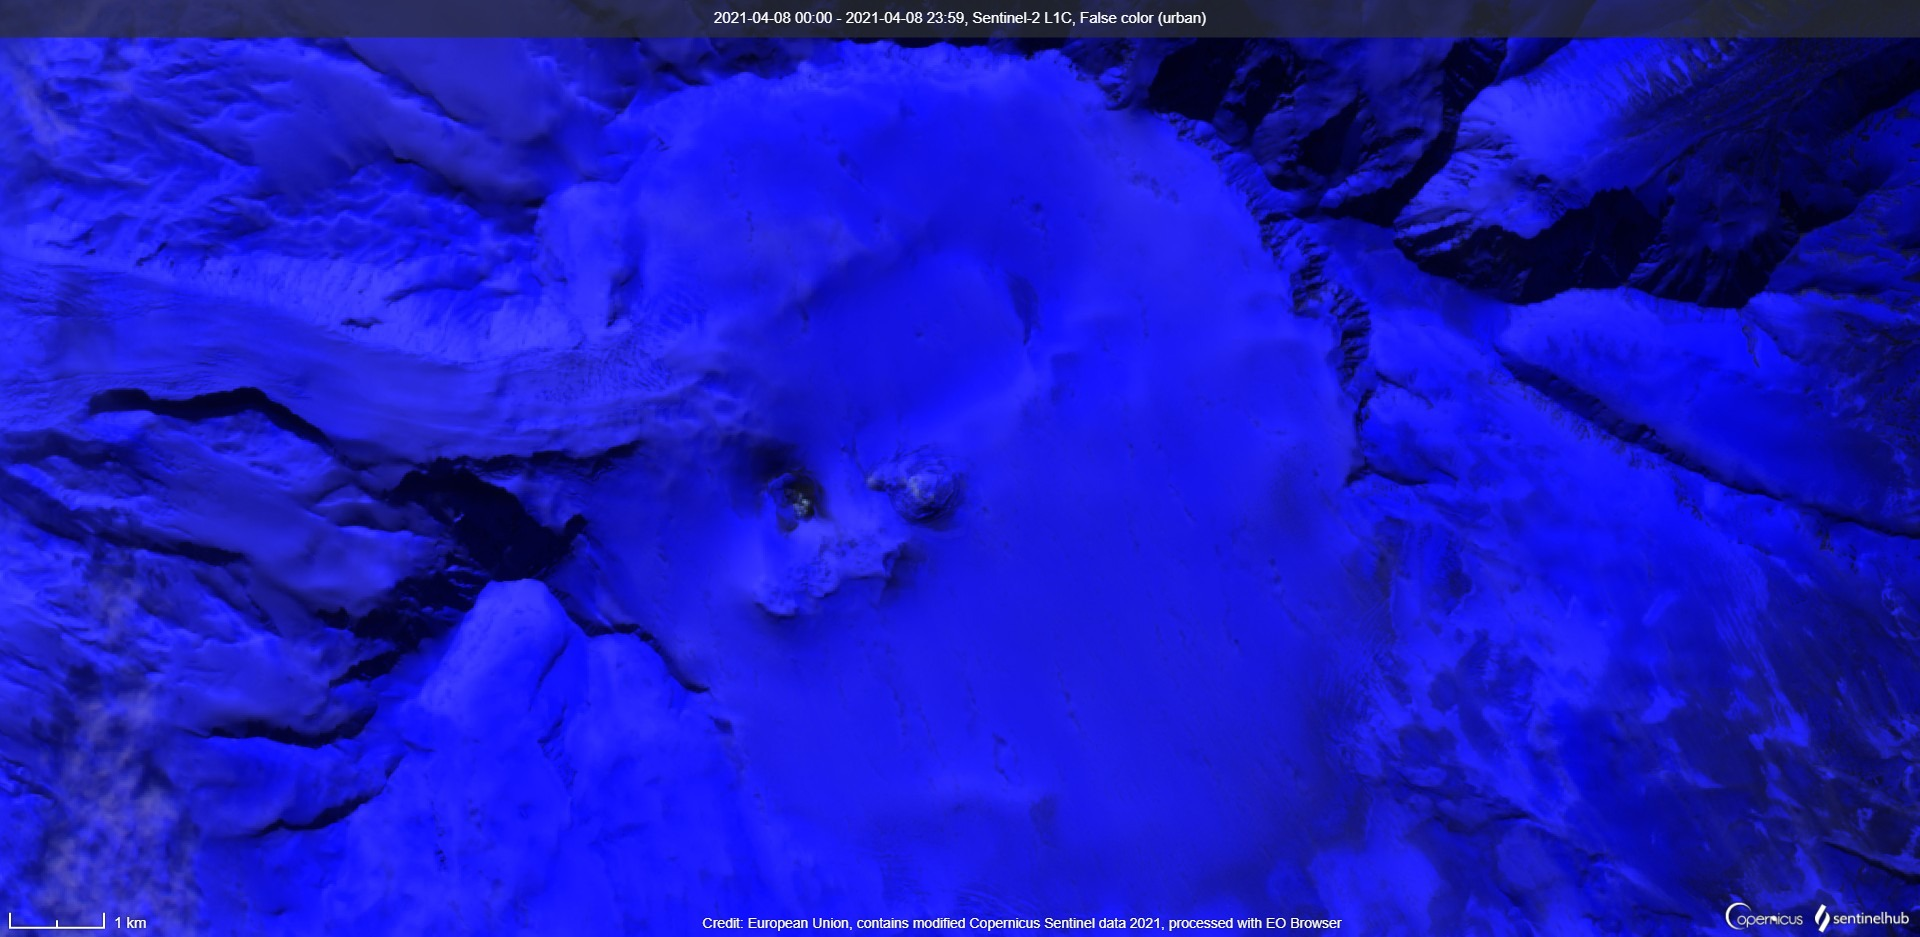 Veniaminof volcano without signs of the ash emissions on 8 April (image: Sentinel 2)